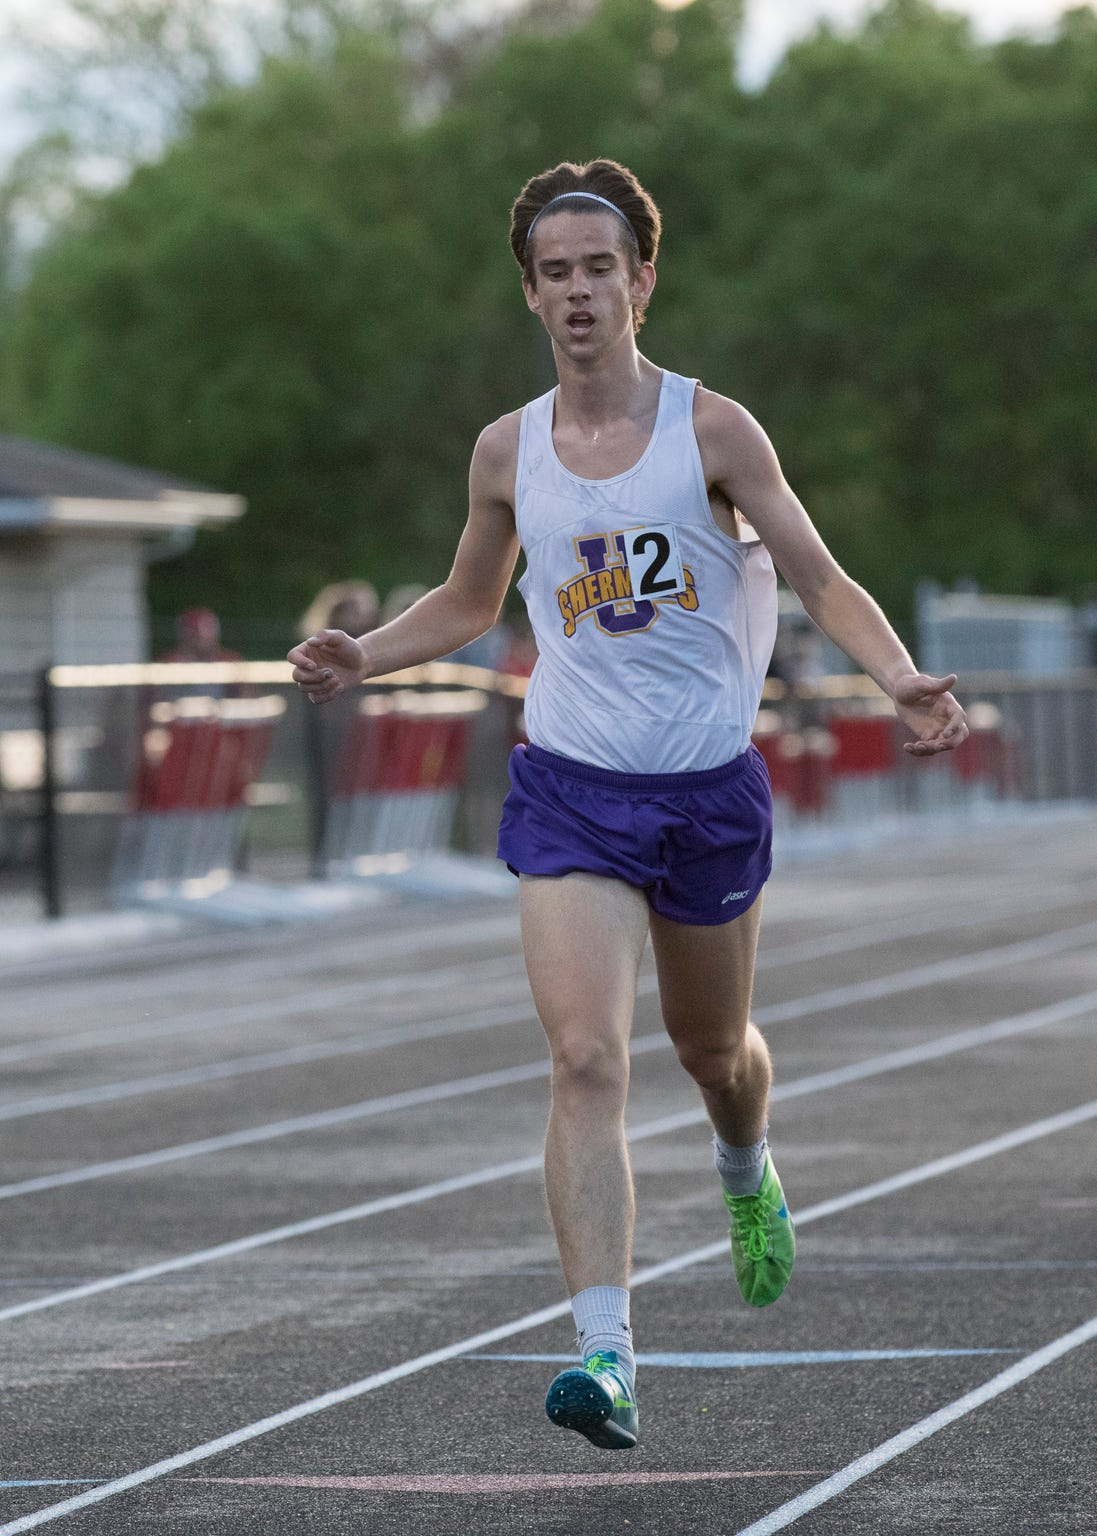 Tucker Markko crosses the finish line after winning  one of his last 3,200 races during the Circleville Invitational on May 3, 2019, in Circleville, Ohio. Markko, who was ranked third in the state in the 3200, won the race with a time of 9:50.07 and was projected to do well in the state meet.